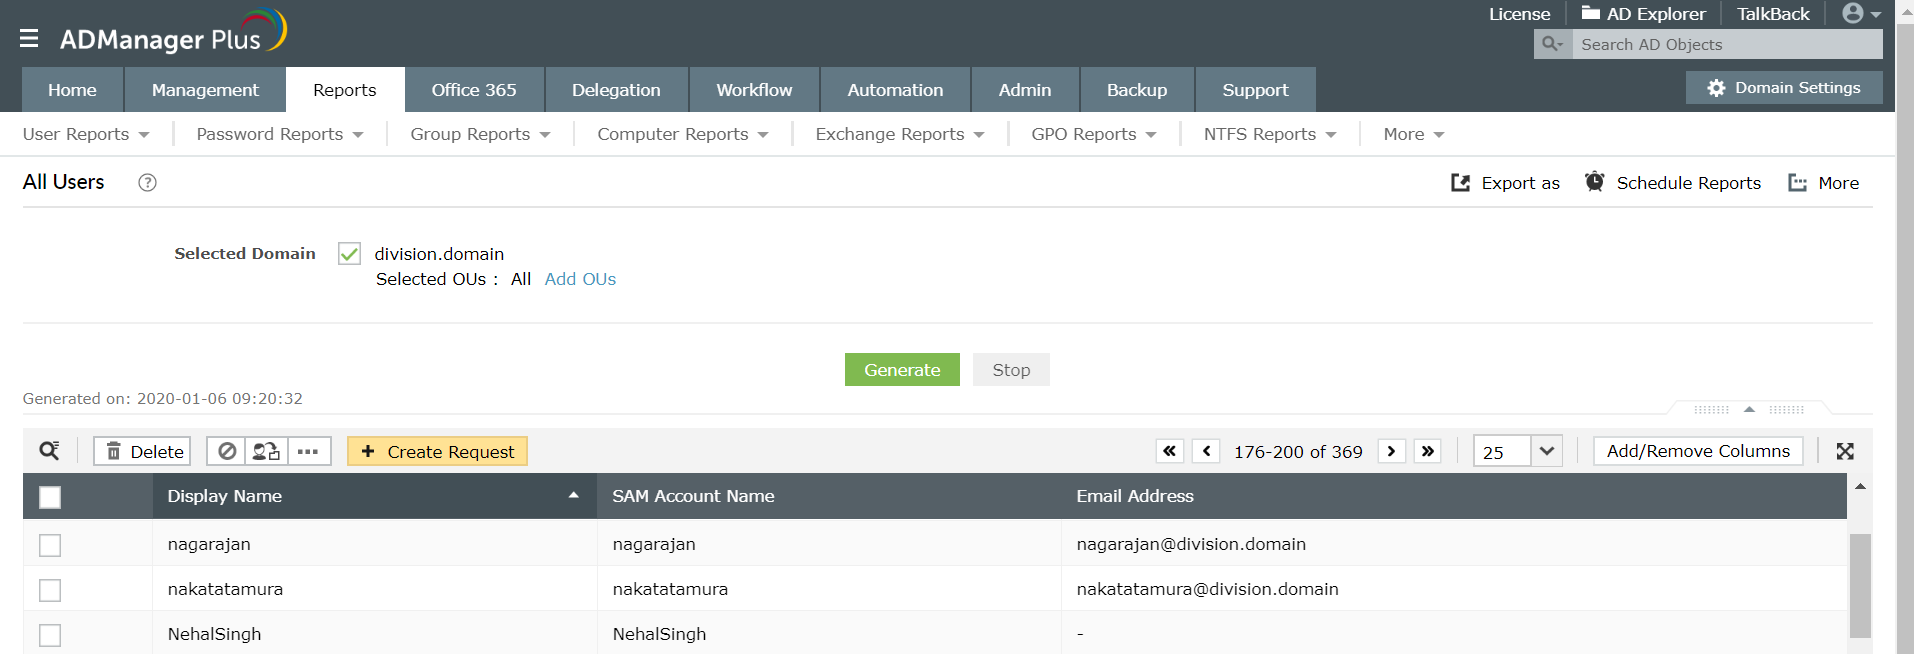 Screenshot of ADManager Plus listing all the users along with their sAMAccount names.